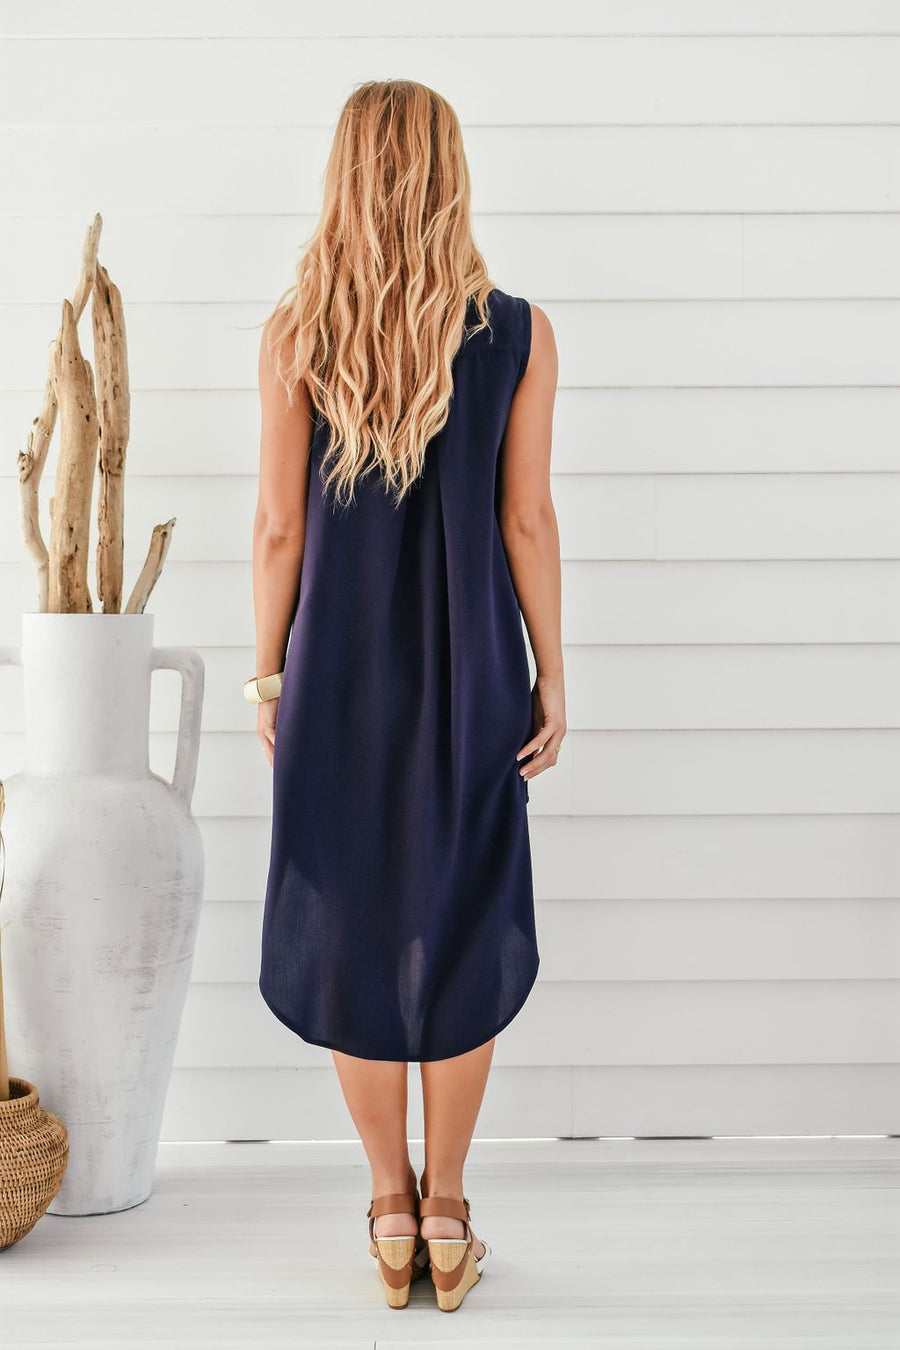 Addi Shirt Dress | Navy DRESS Gray Label